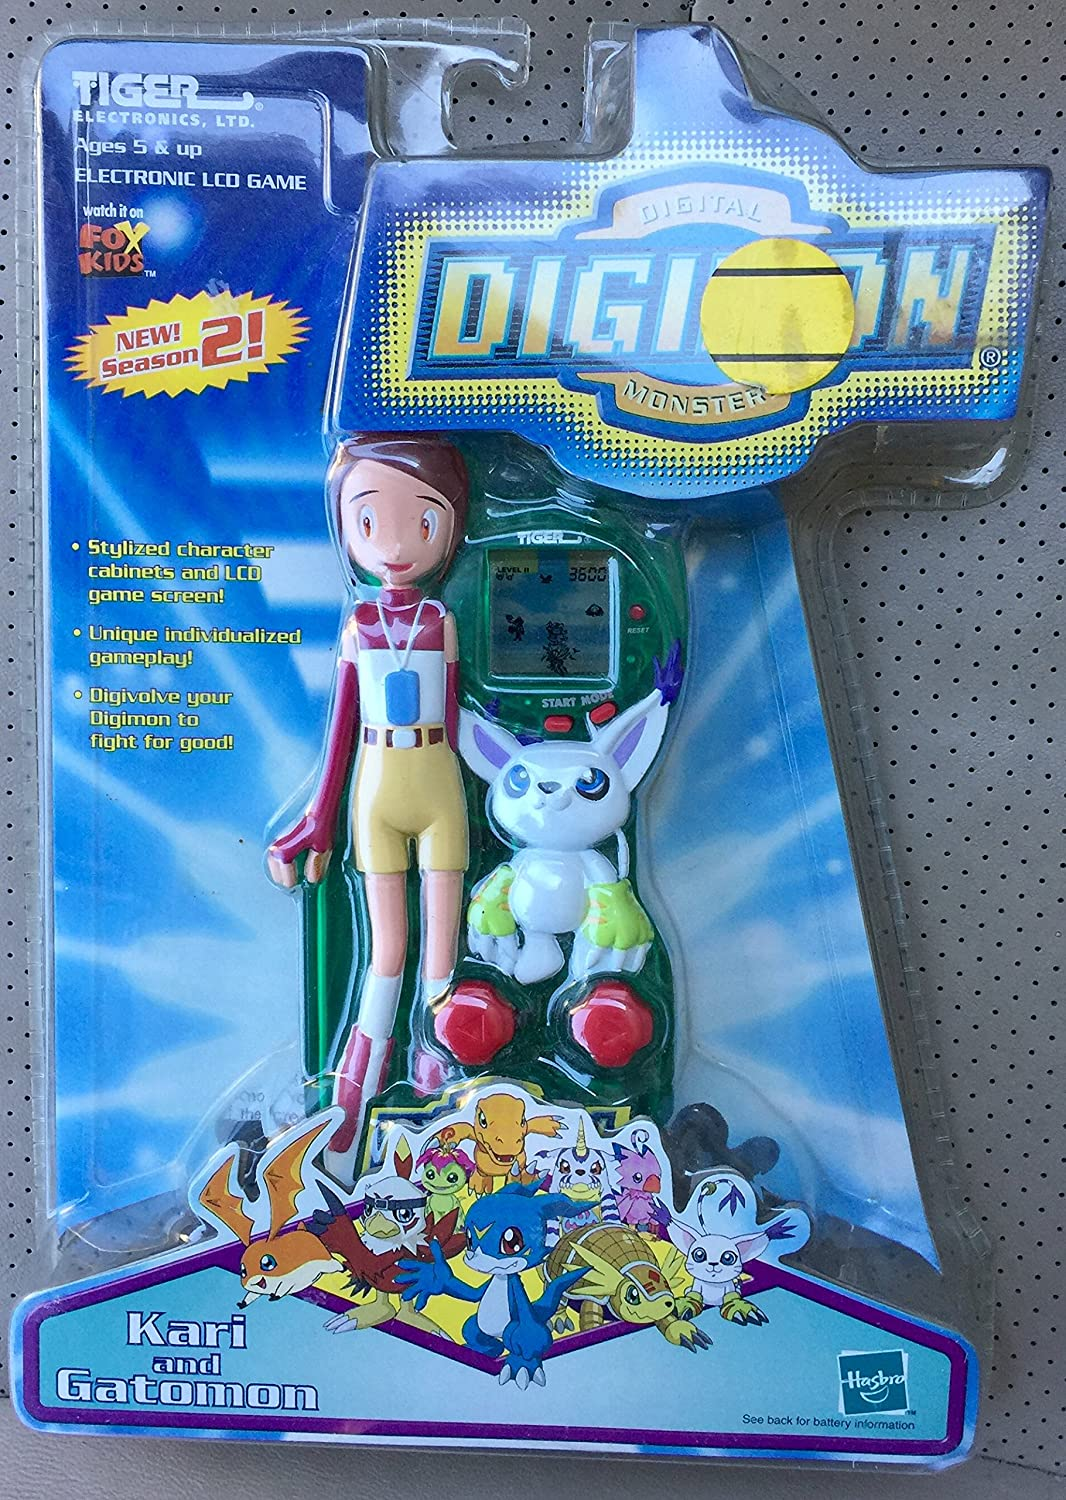 [Tiger Electronics, LTD]Tiger Electronics, LTD Digital Digimon Electronic LCD Game Yolei and Hawkmon Tiger Electronics [並行輸入品] B003Z32F2U